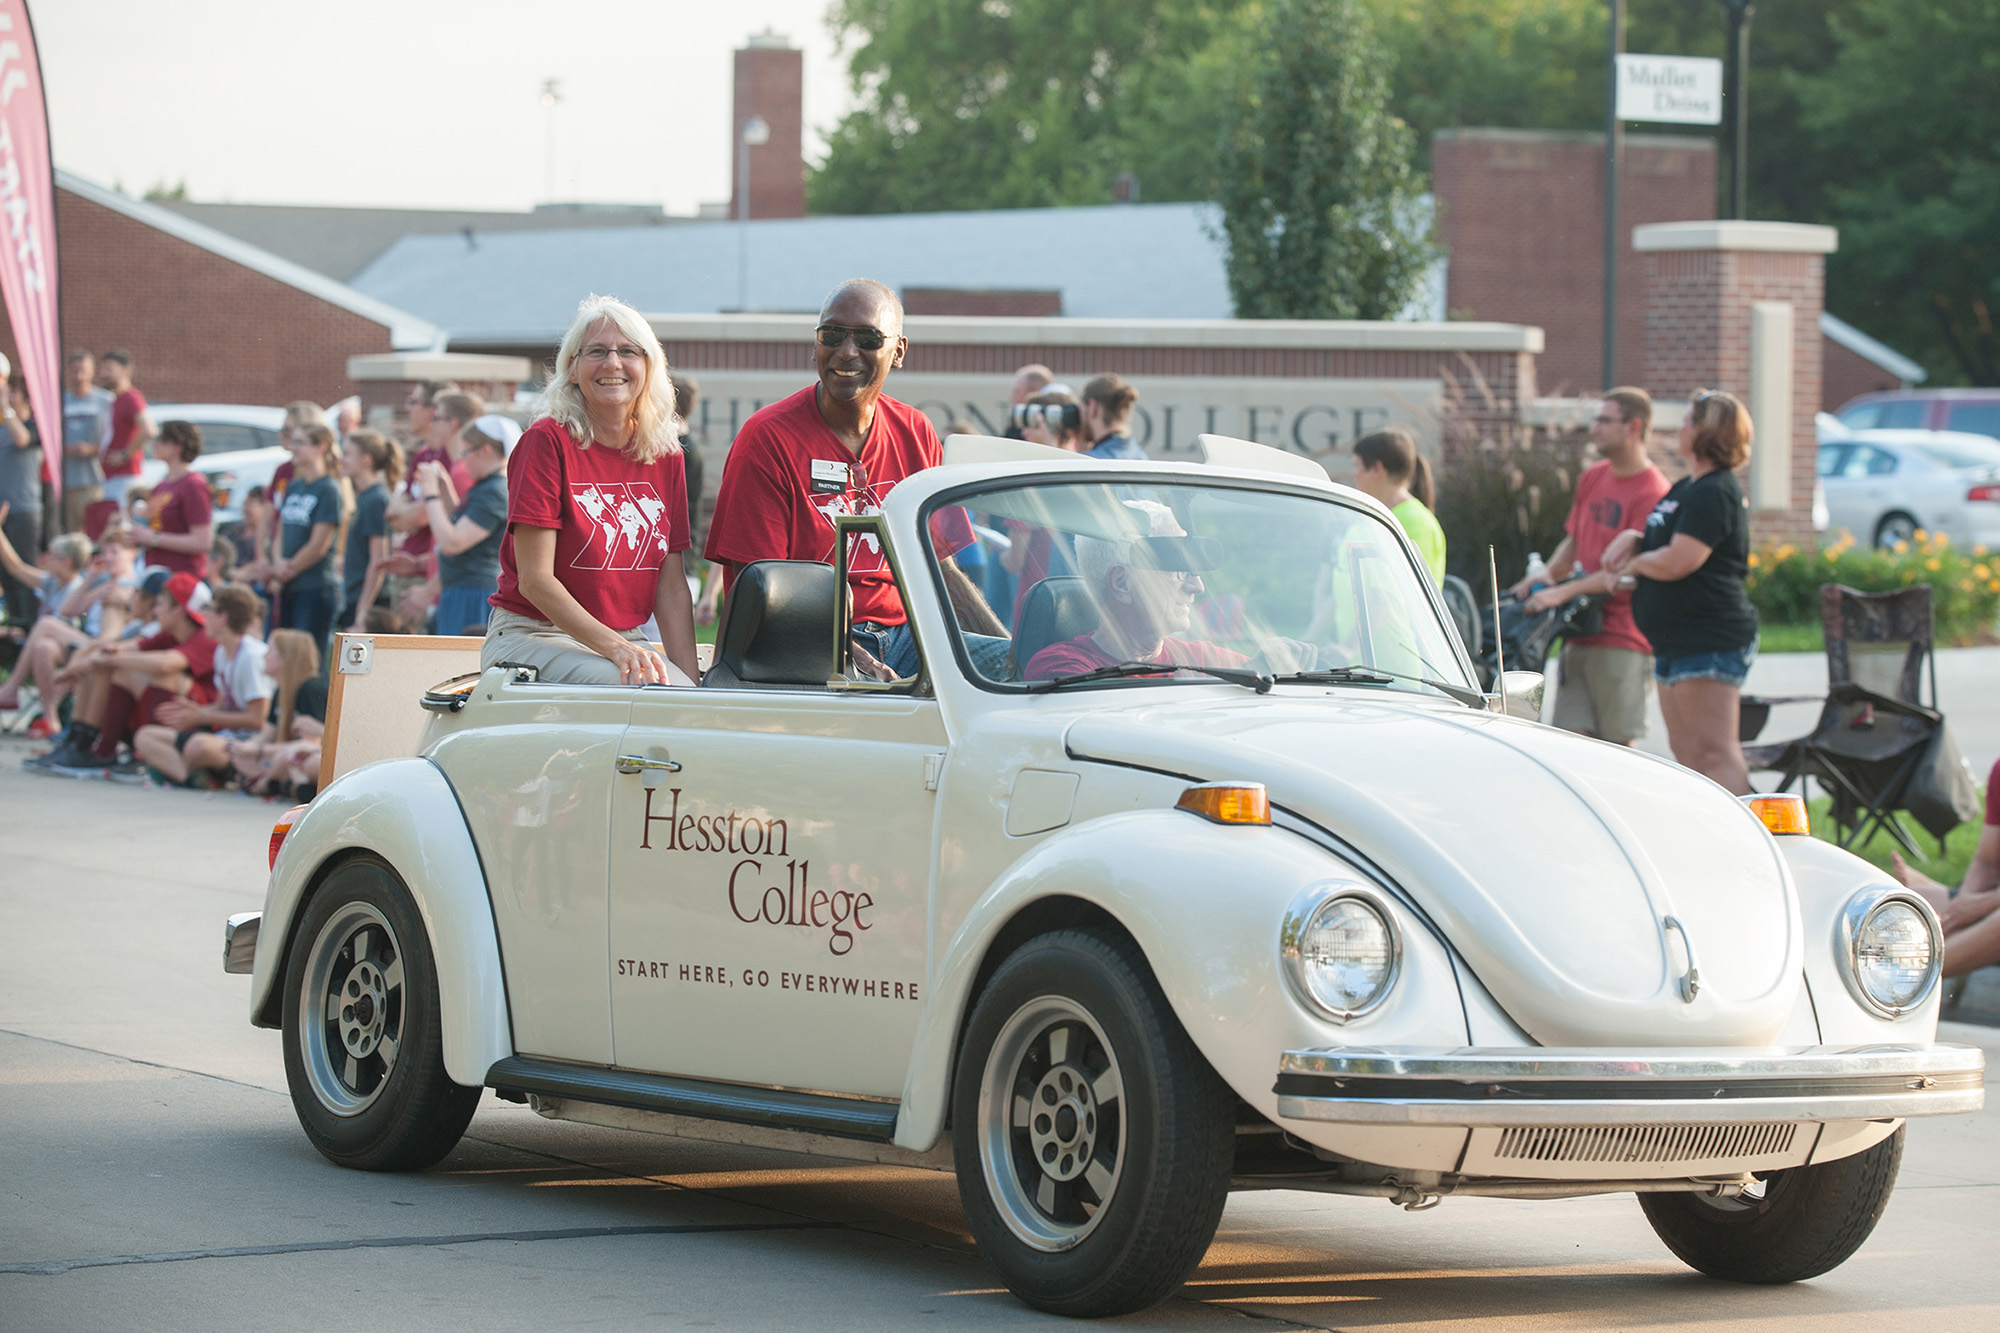 President Joe and Wanda Manickam ride in the Hesston College Beetle in the homecoming parade